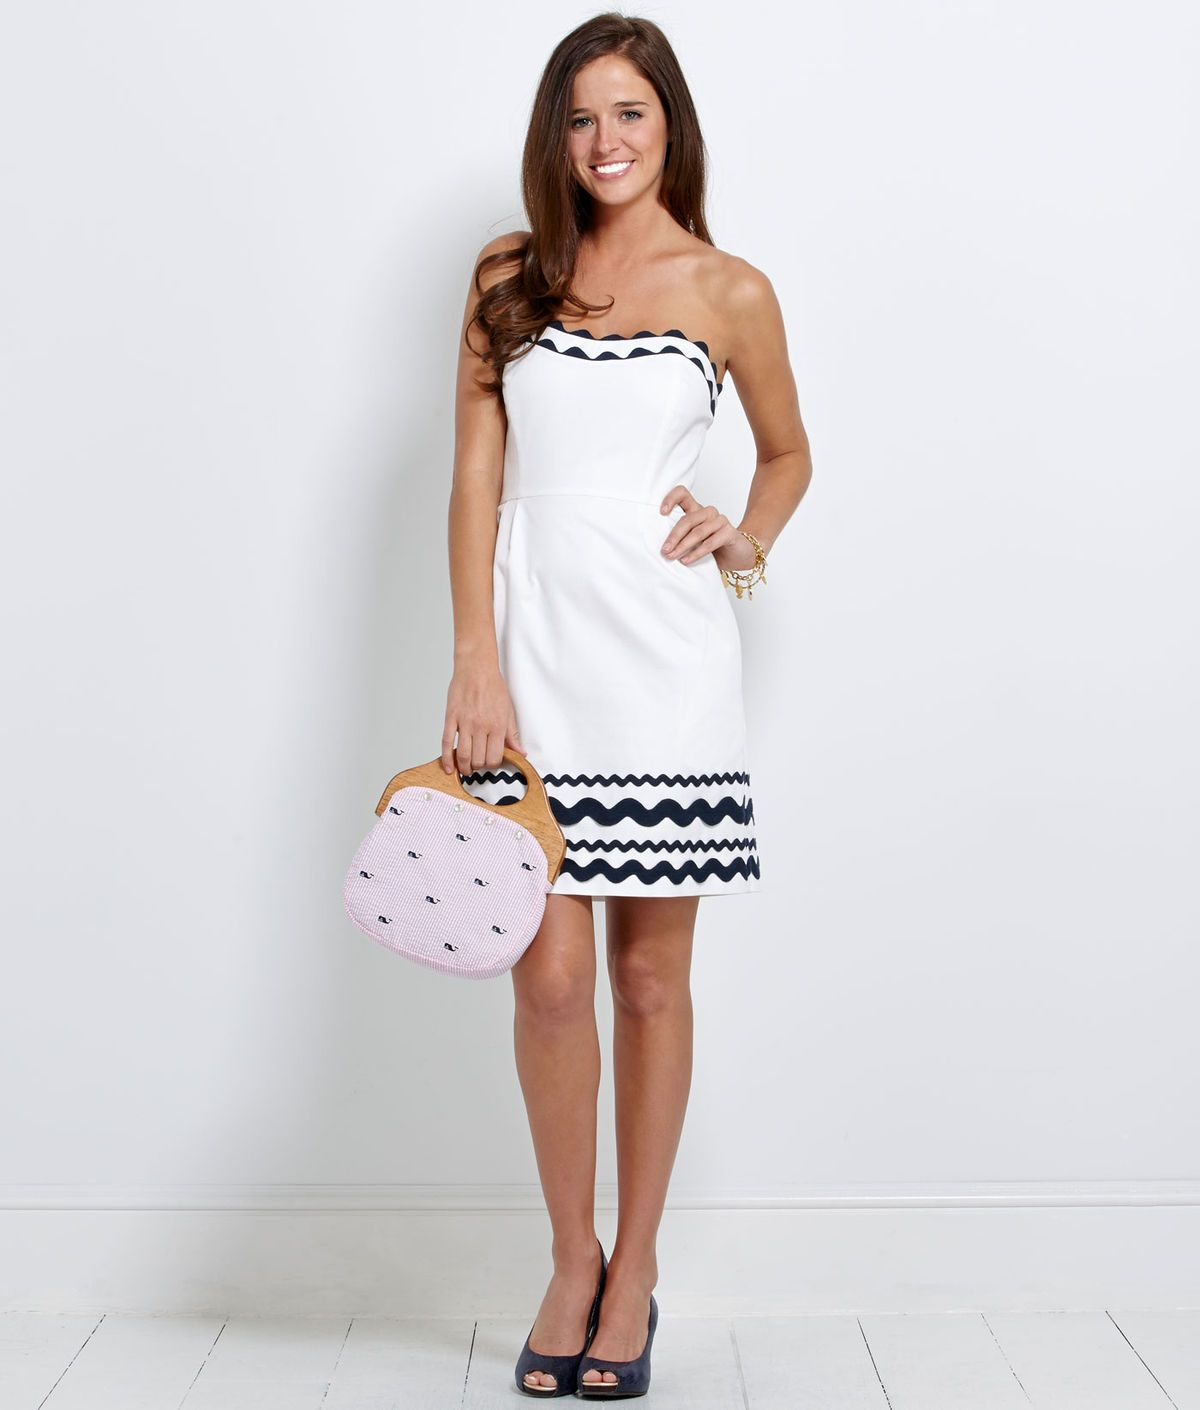 Vineyard Vines Dress Perfect For Au Tailgating With An Orange Necklace Of Course I D Have To Be 15 Years Yo Derby Attire Sweetheart Strapless Dress Fashion [ 1410 x 1200 Pixel ]